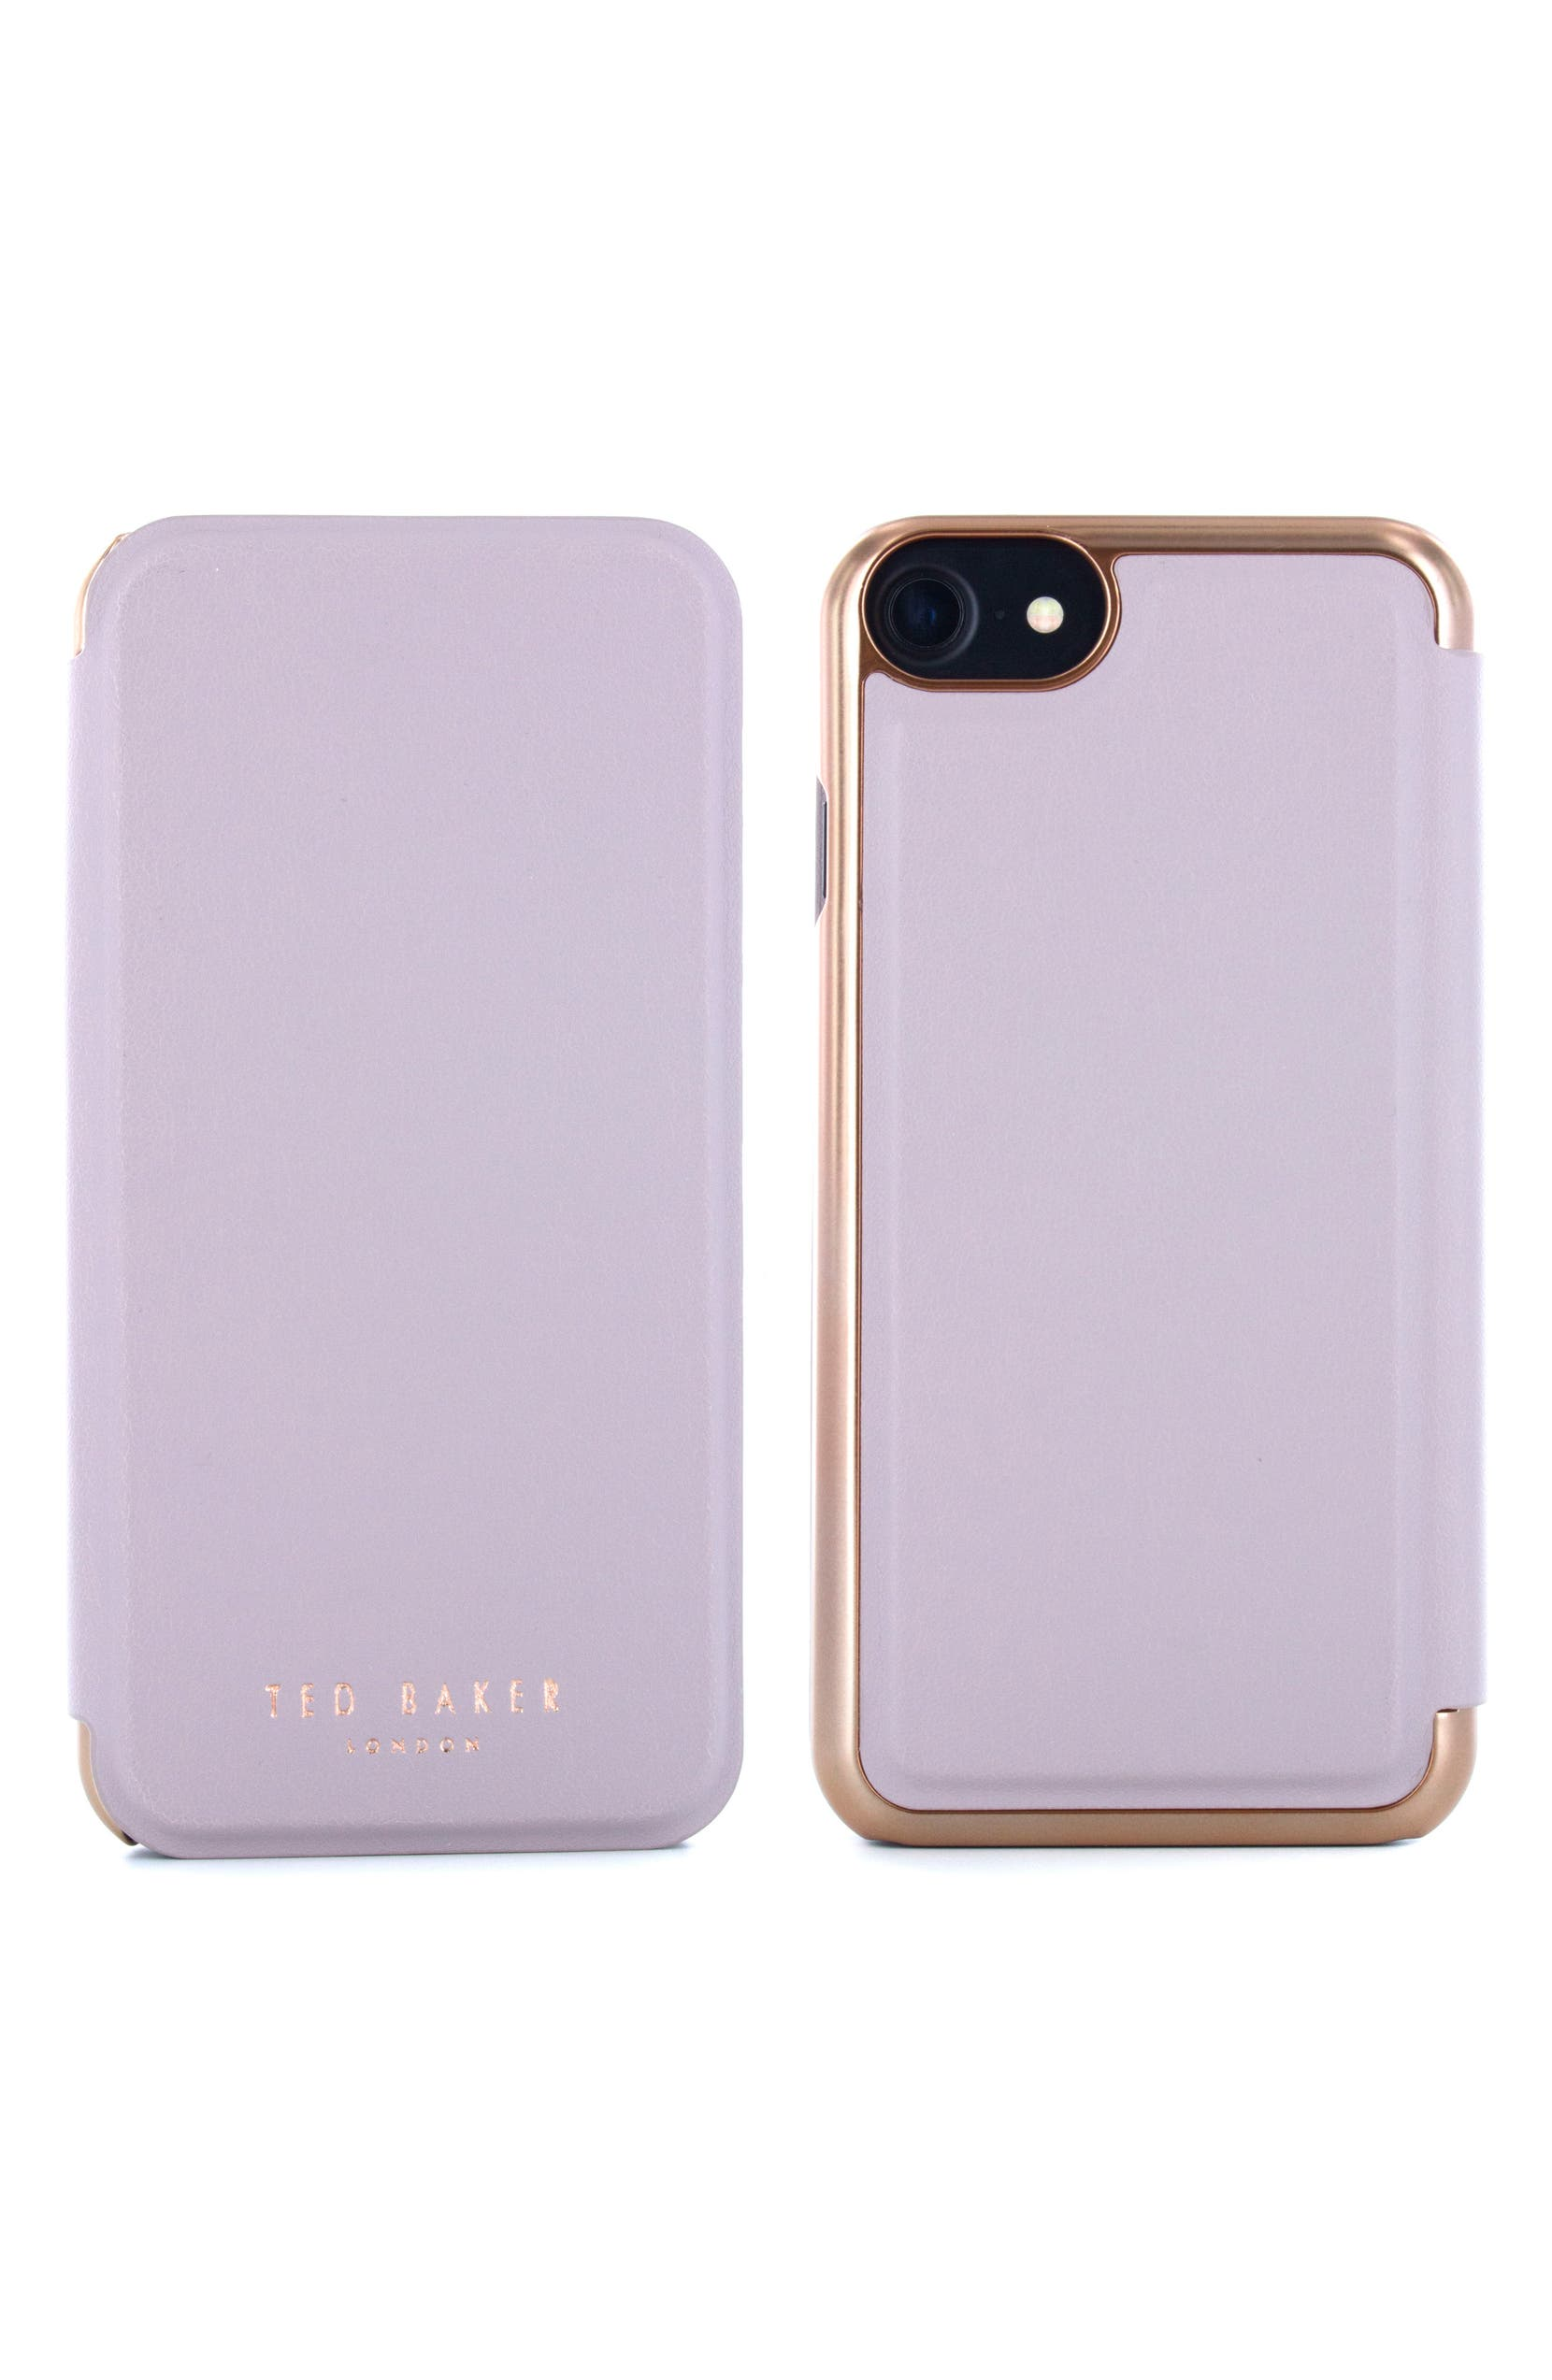 91a0acd680d Shannon iPhone 6/6s/7/8 & 6/6s/7/8 Plus Mirror Folio Case